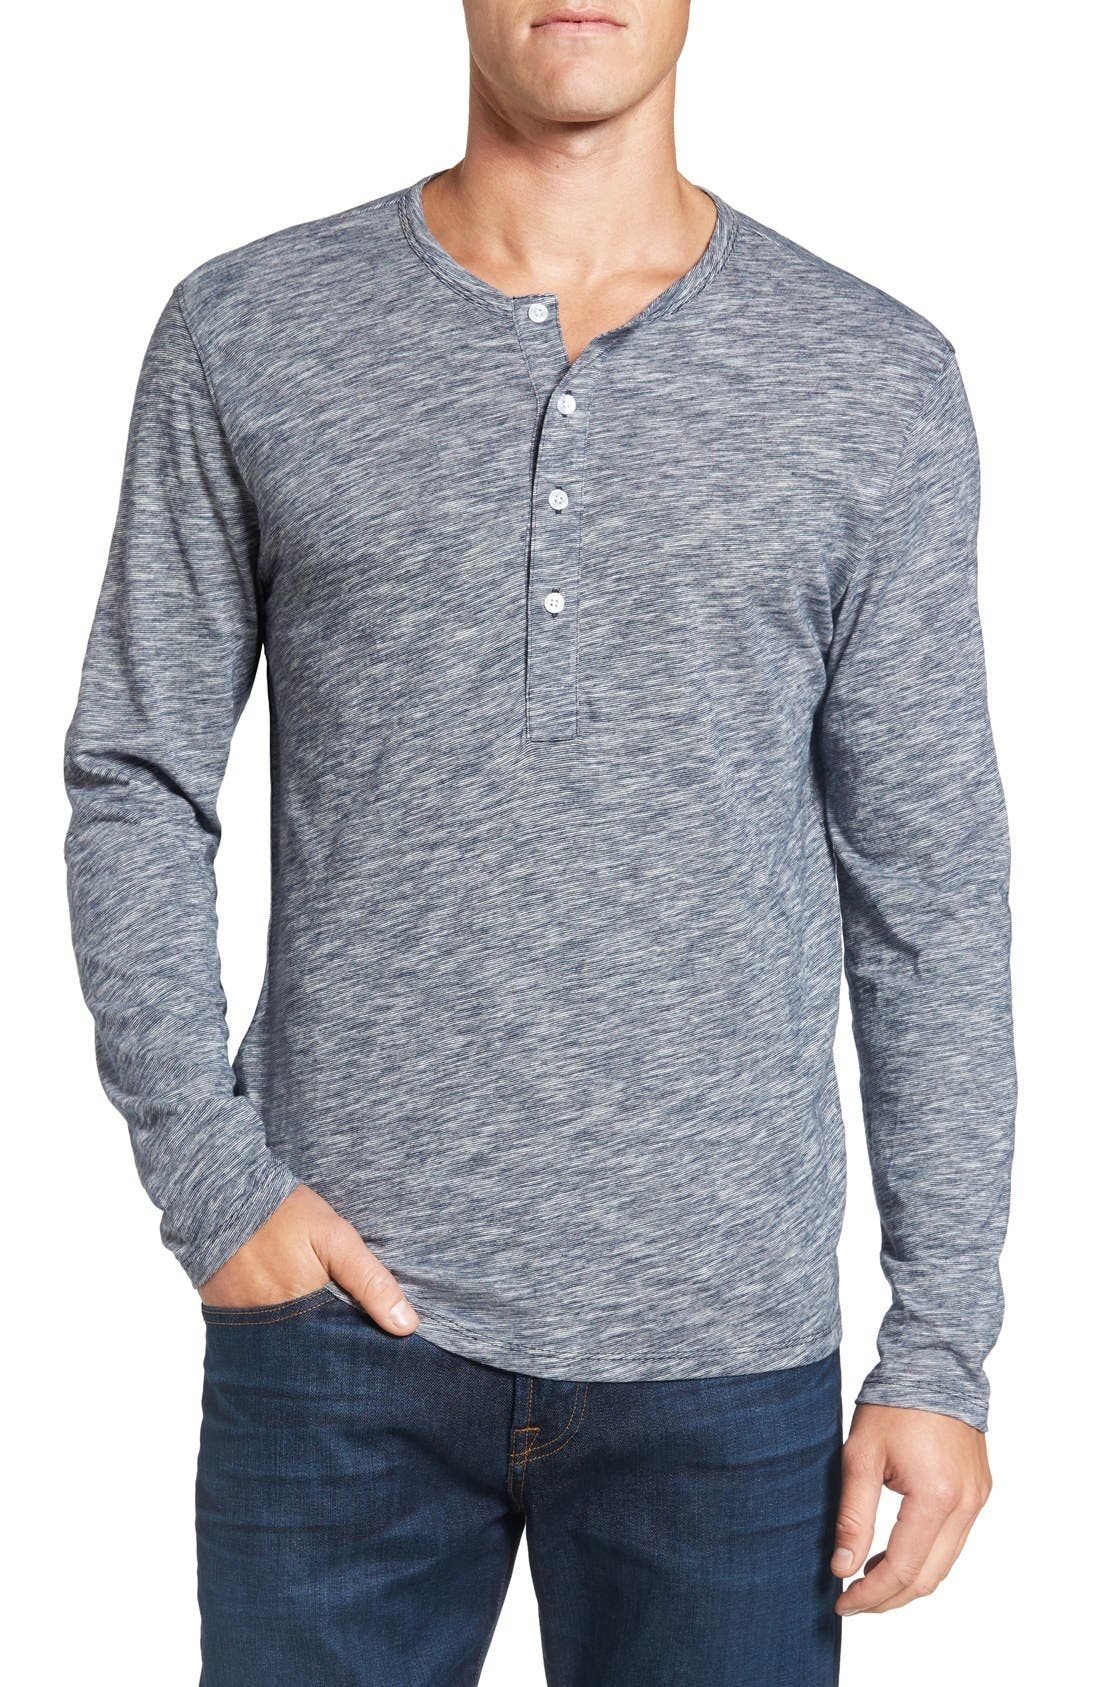 Main Image - Bonobos Slim Fit Cotton Henley